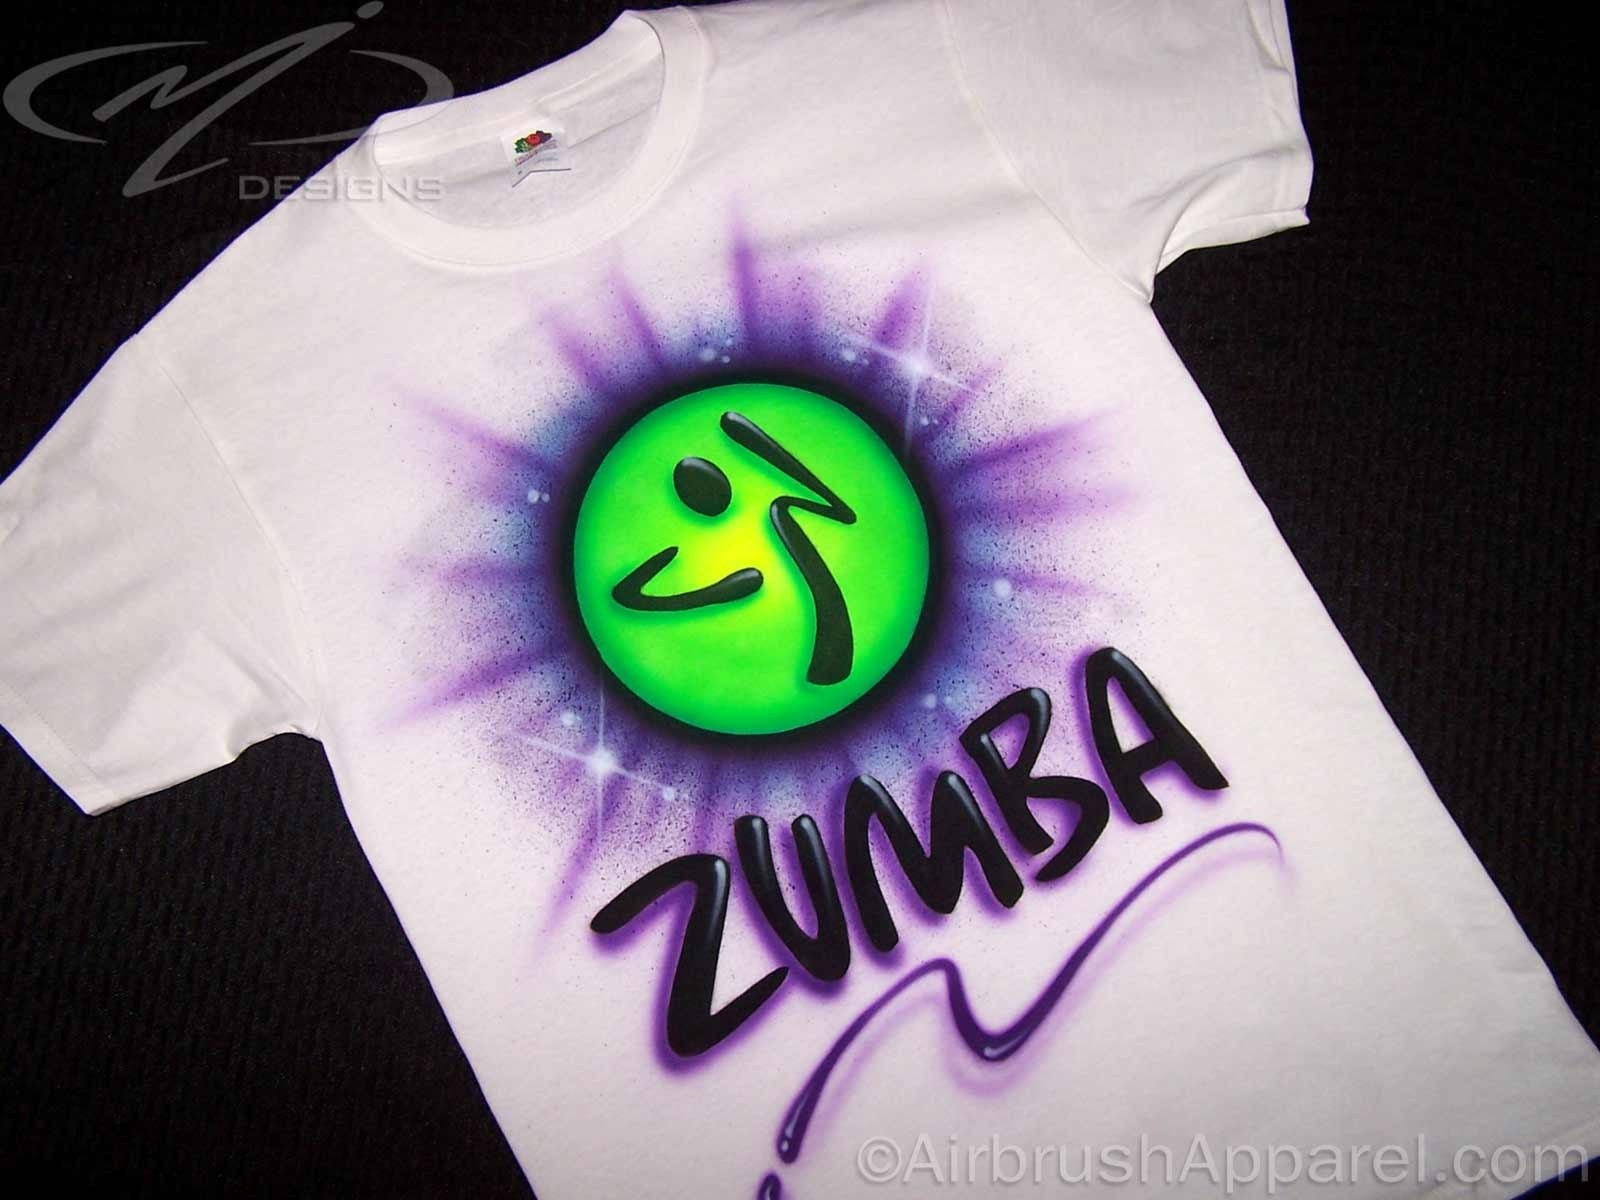 Design t shirt zumba - Zumba Airbrushed Custom Shirt Design